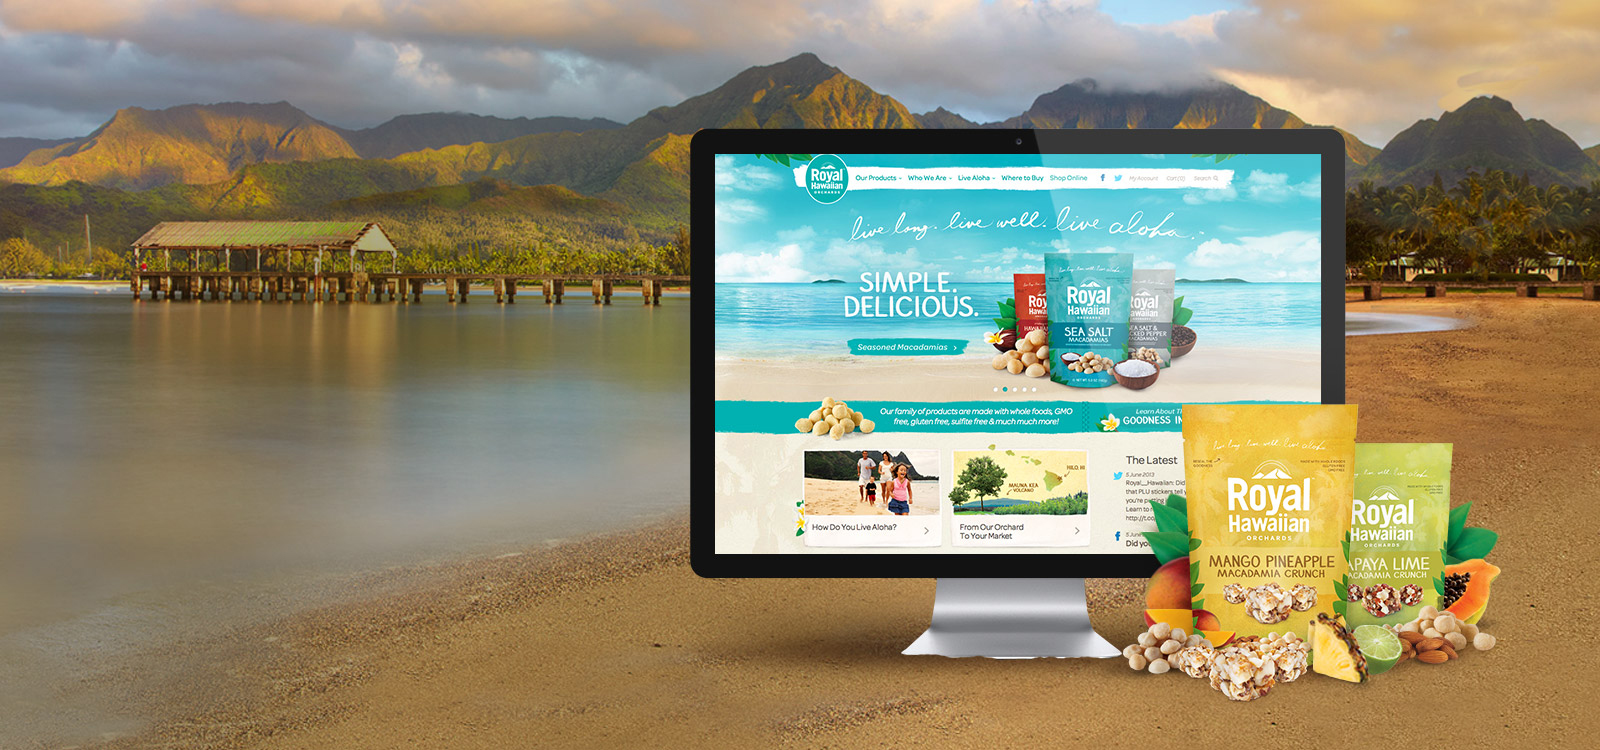 Royal Hawaiian snack brand digital marketing & website development